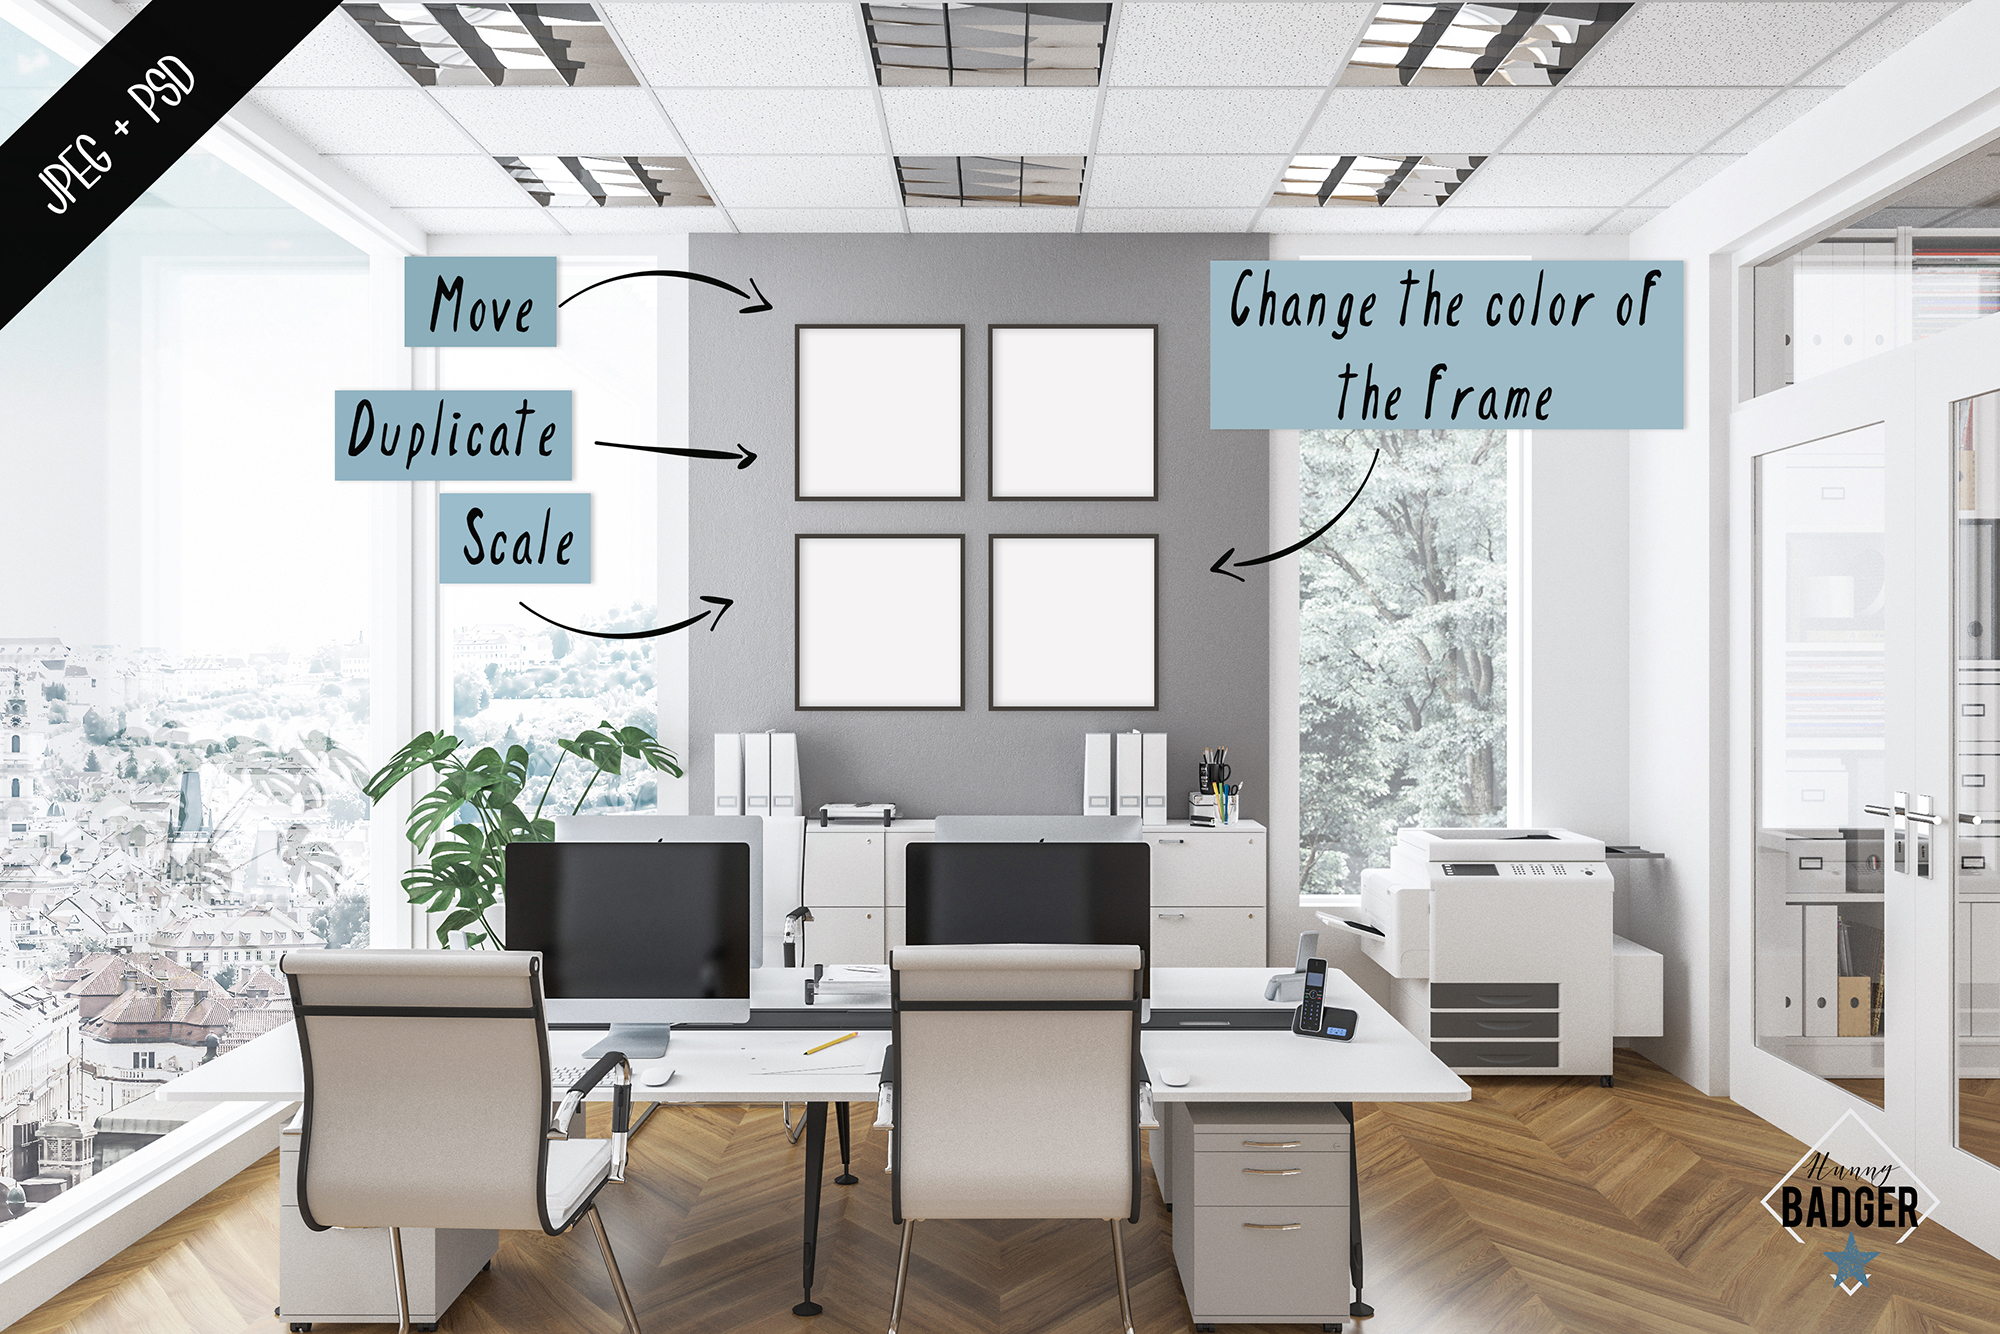 Office interior mockup - frame & wall mockup creator example image 4